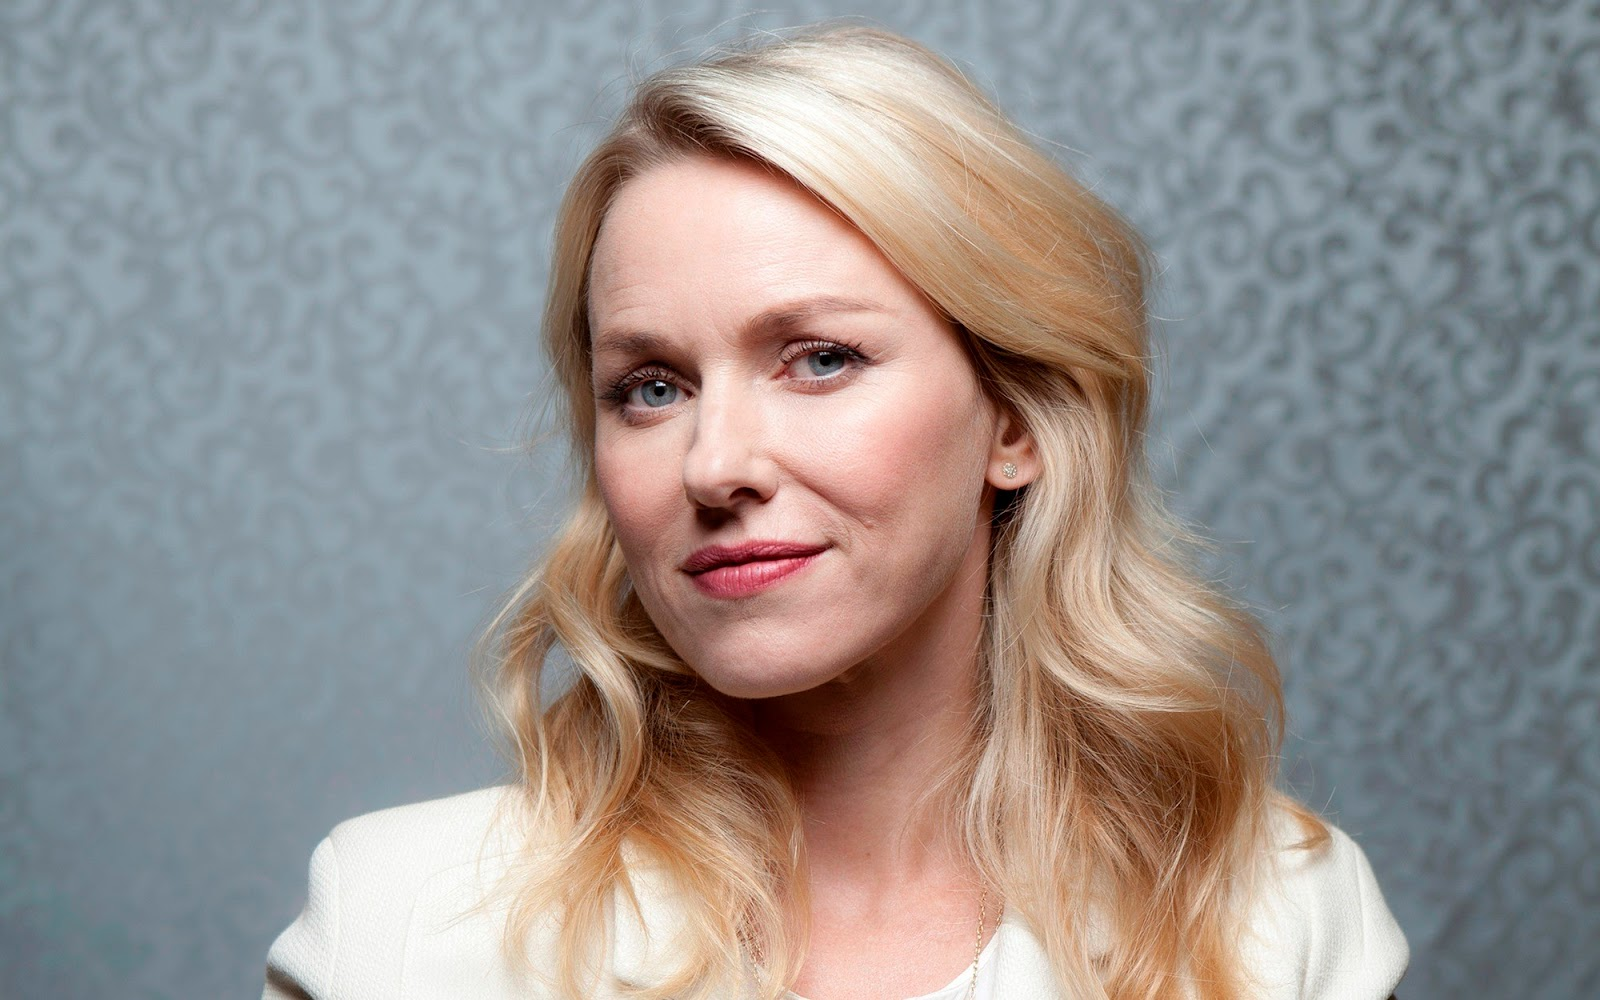 Gypsy - Naomi Watts Cast as the Lead